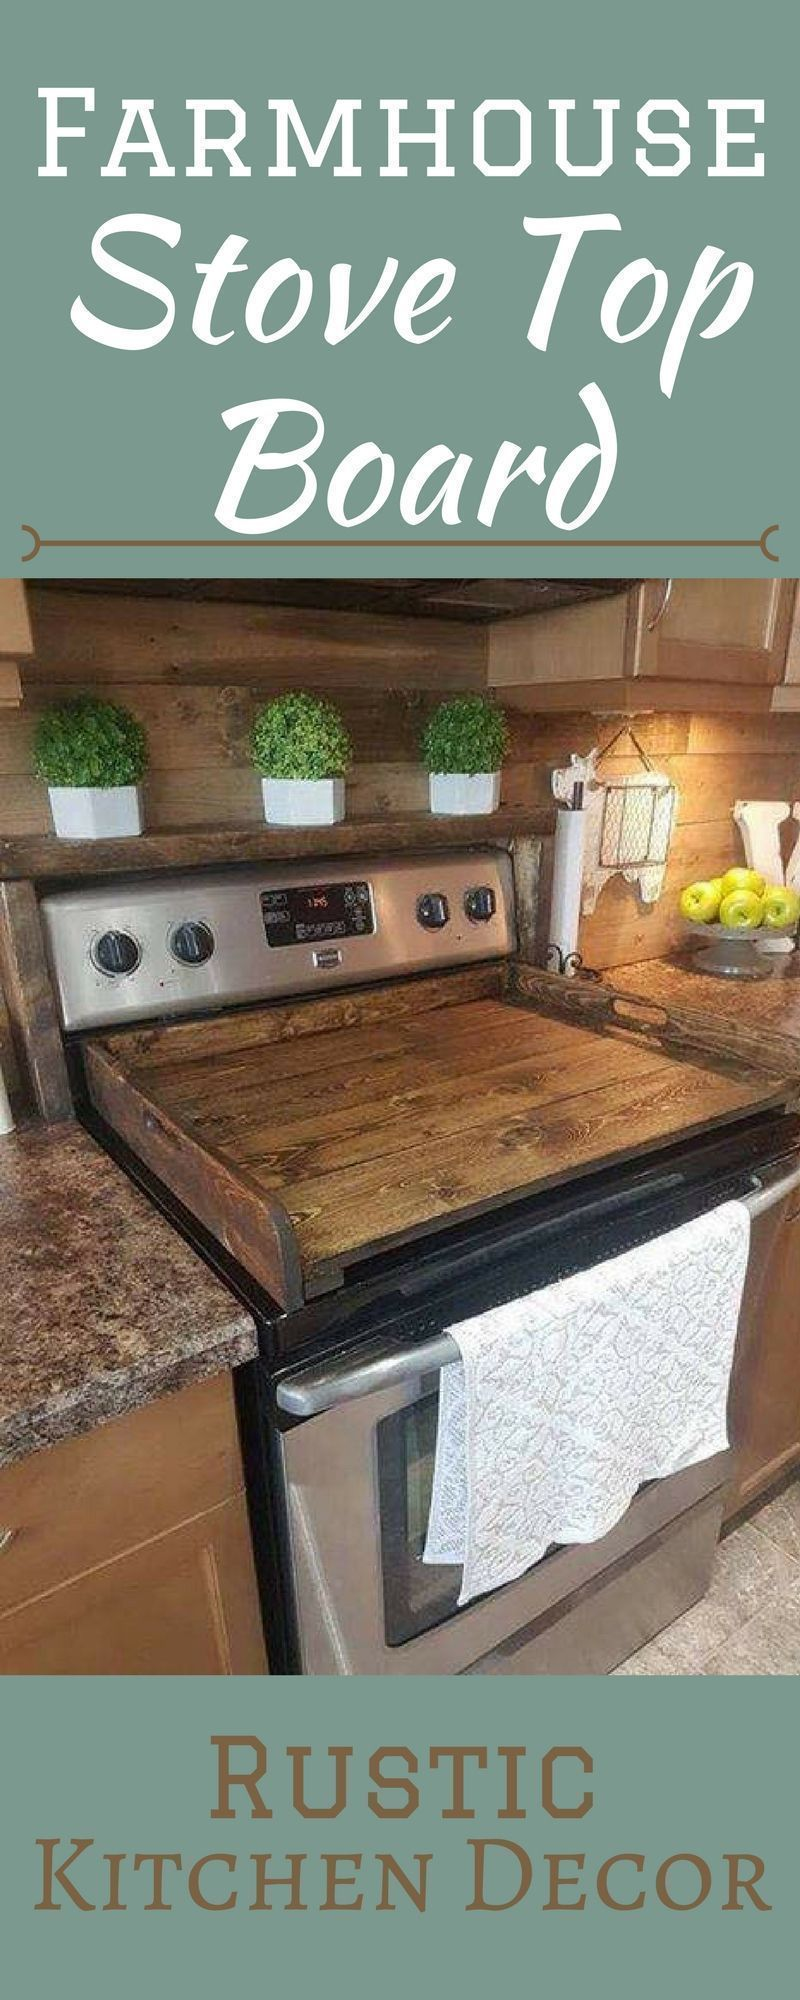 Beautiful Wood Stove Top Board Create A Clean Look In Your